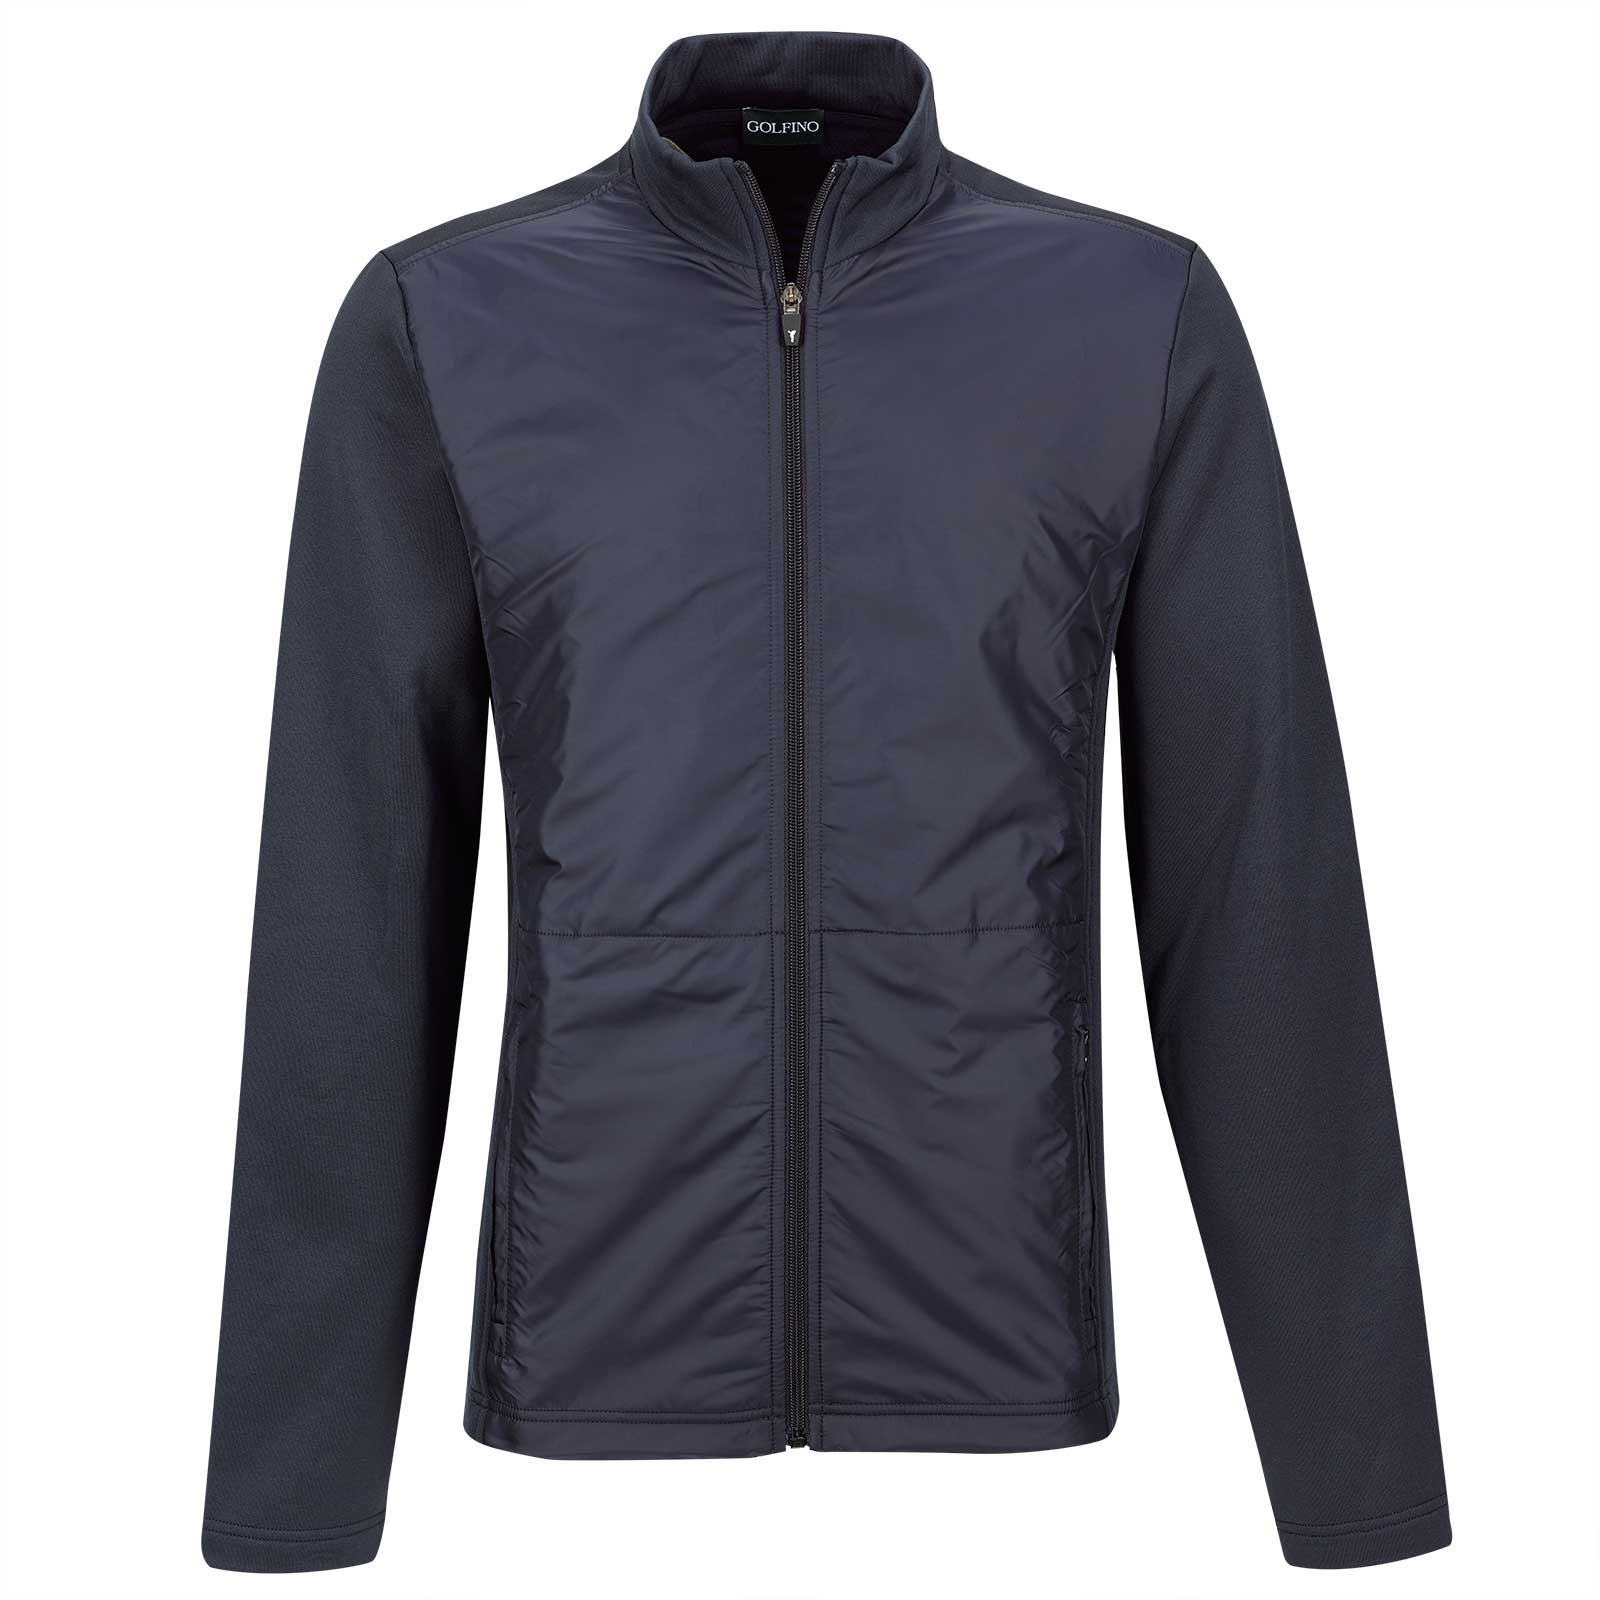 Micro stretch men's Cold Protection Jacket